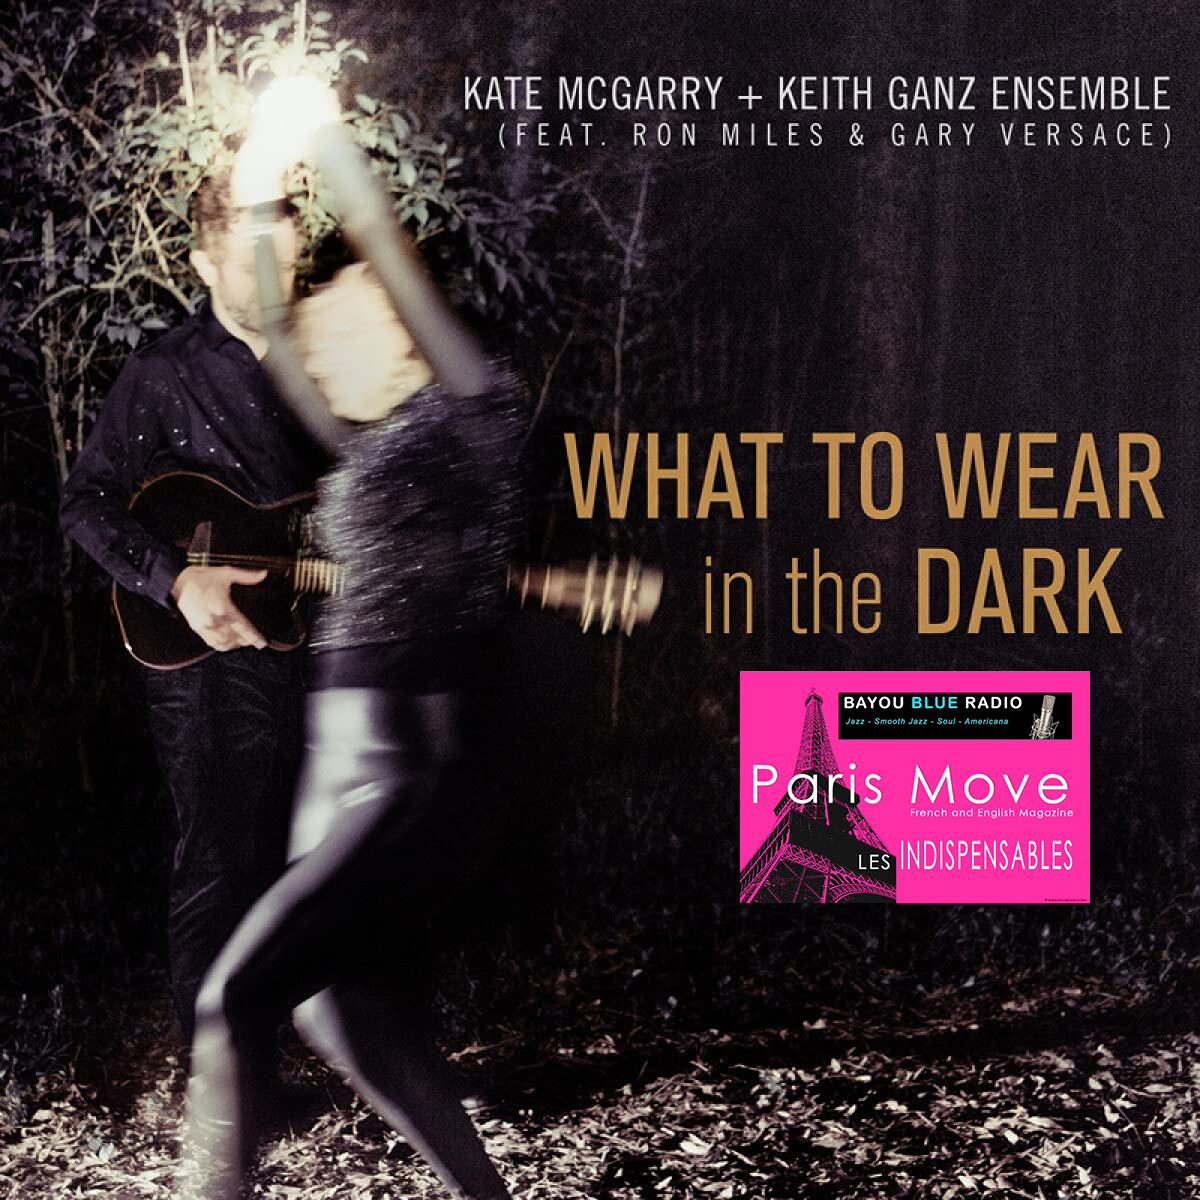 KATE MCGARRY & KEITH GANZ ENSEMBLE - What To Wear In The Dark